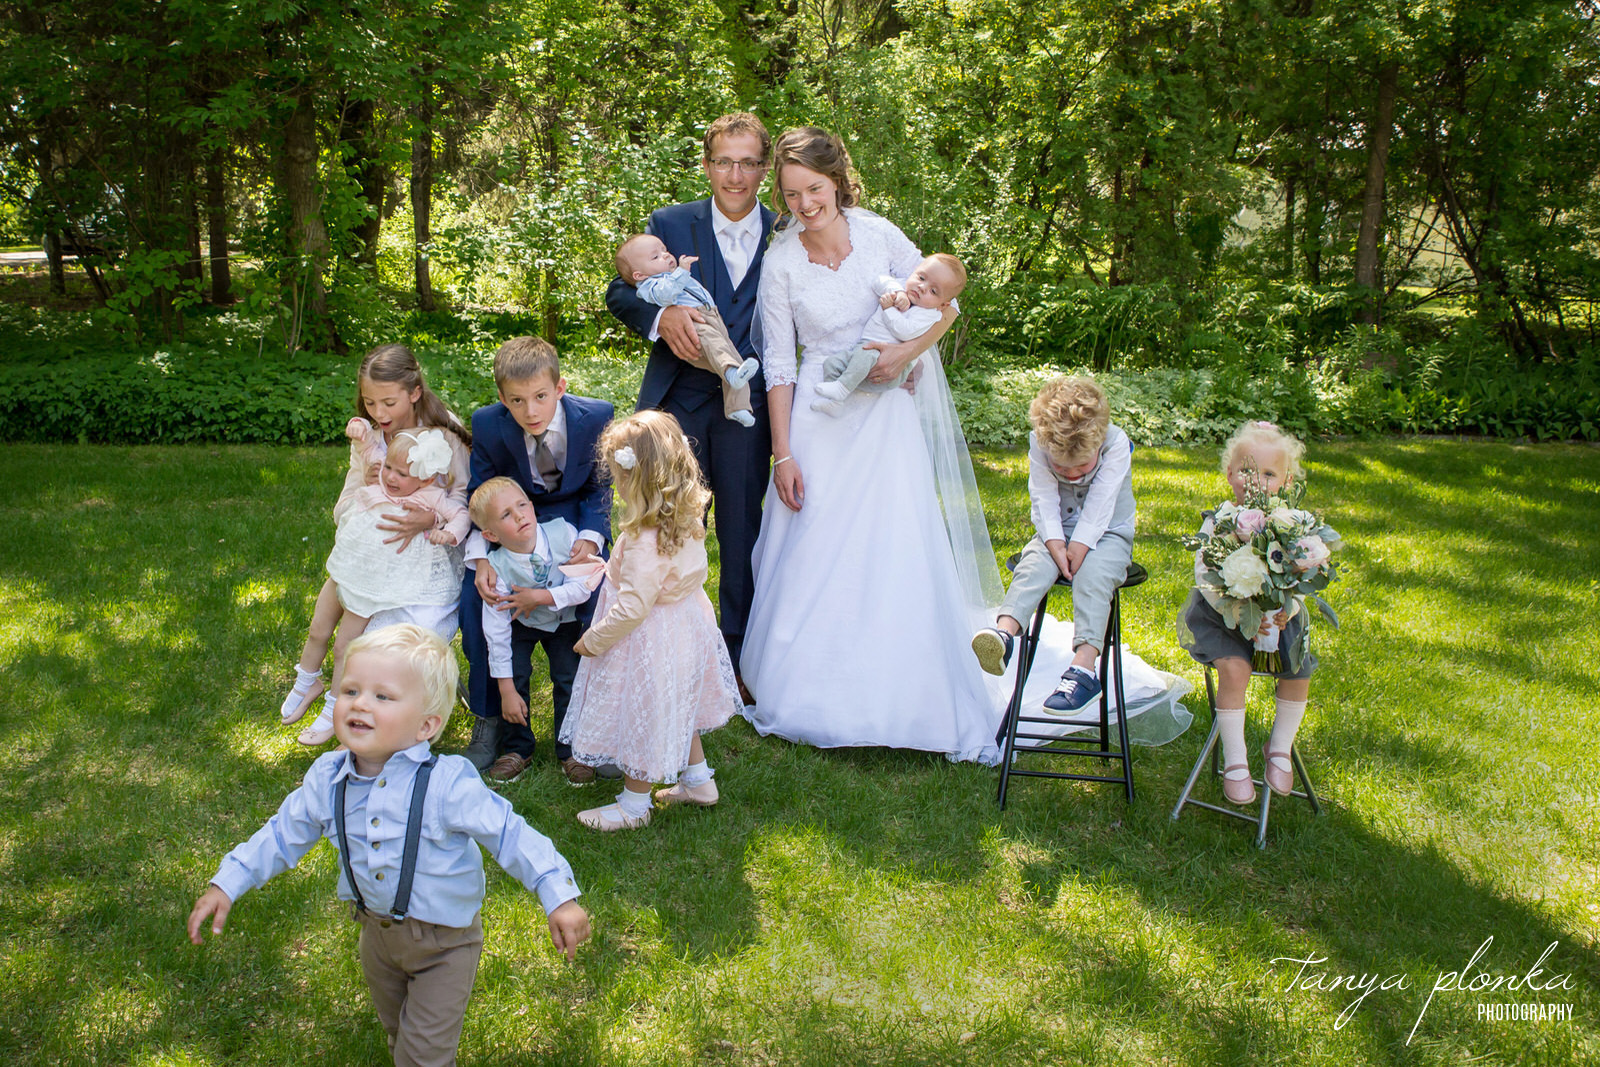 Bride and groom attempt to pose with nieces and nephews while the kids do not behave